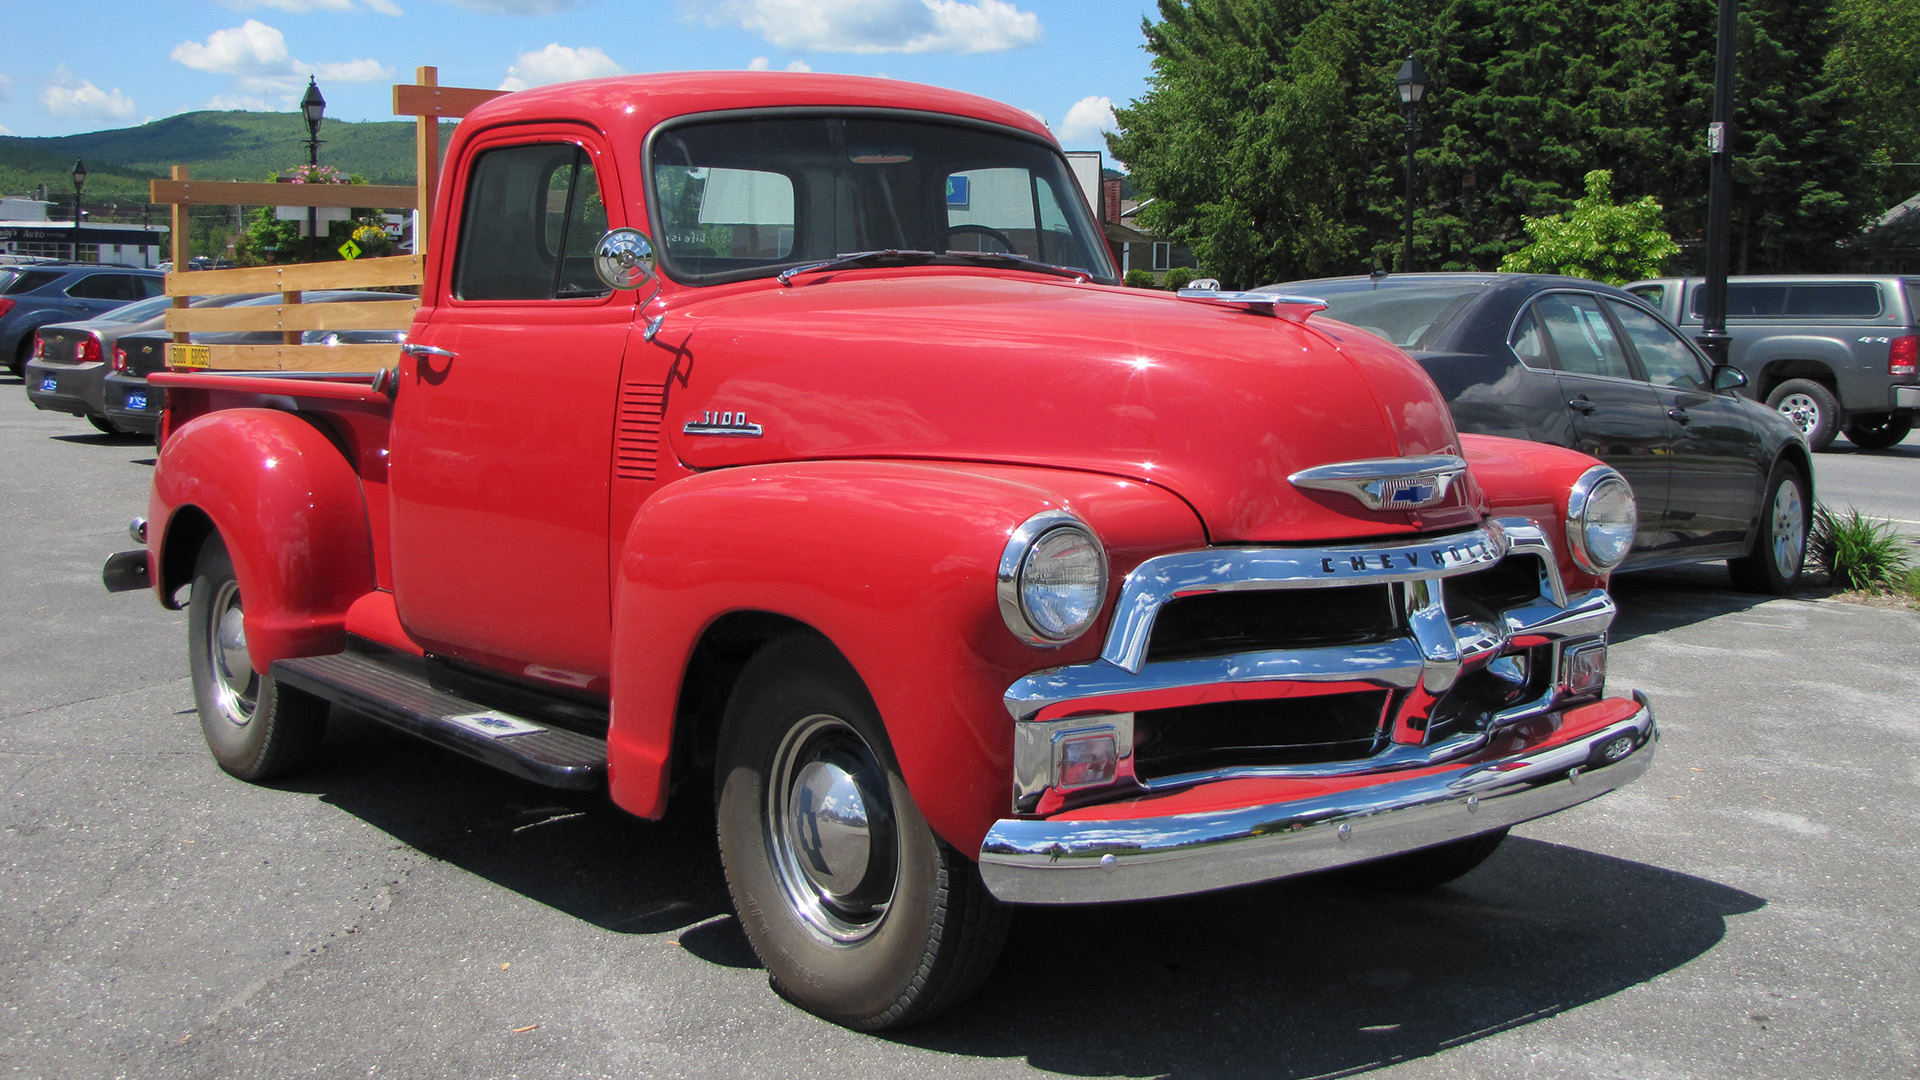 1950s Chevy Trucks Wallpaper - Viewing Gallery